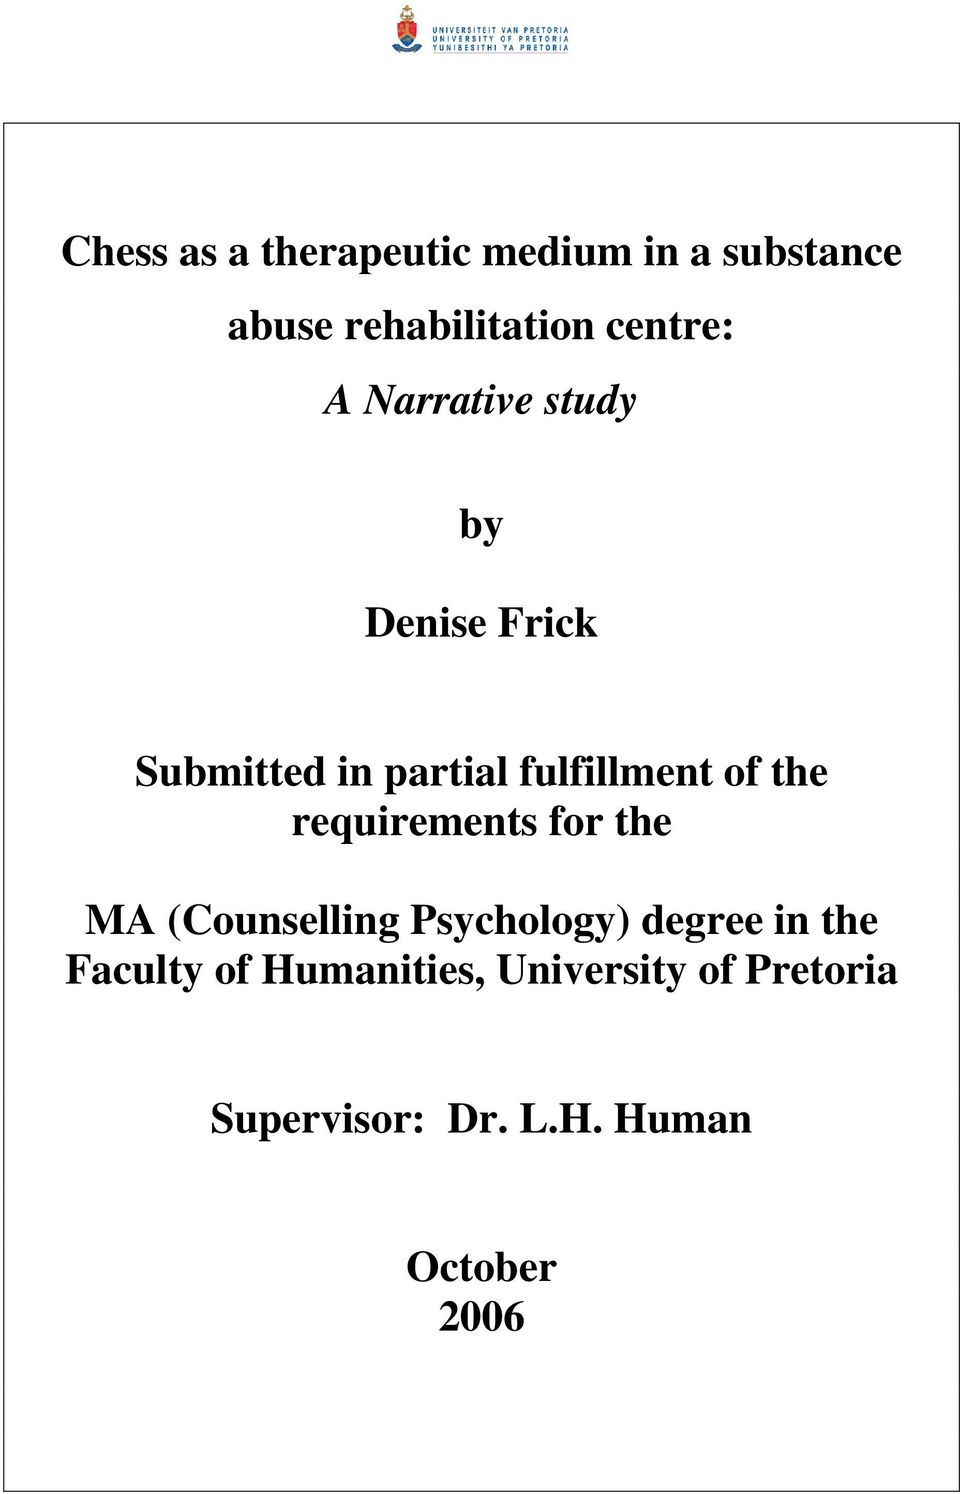 requirements for the MA (Counselling Psychology) degree in the Faculty of